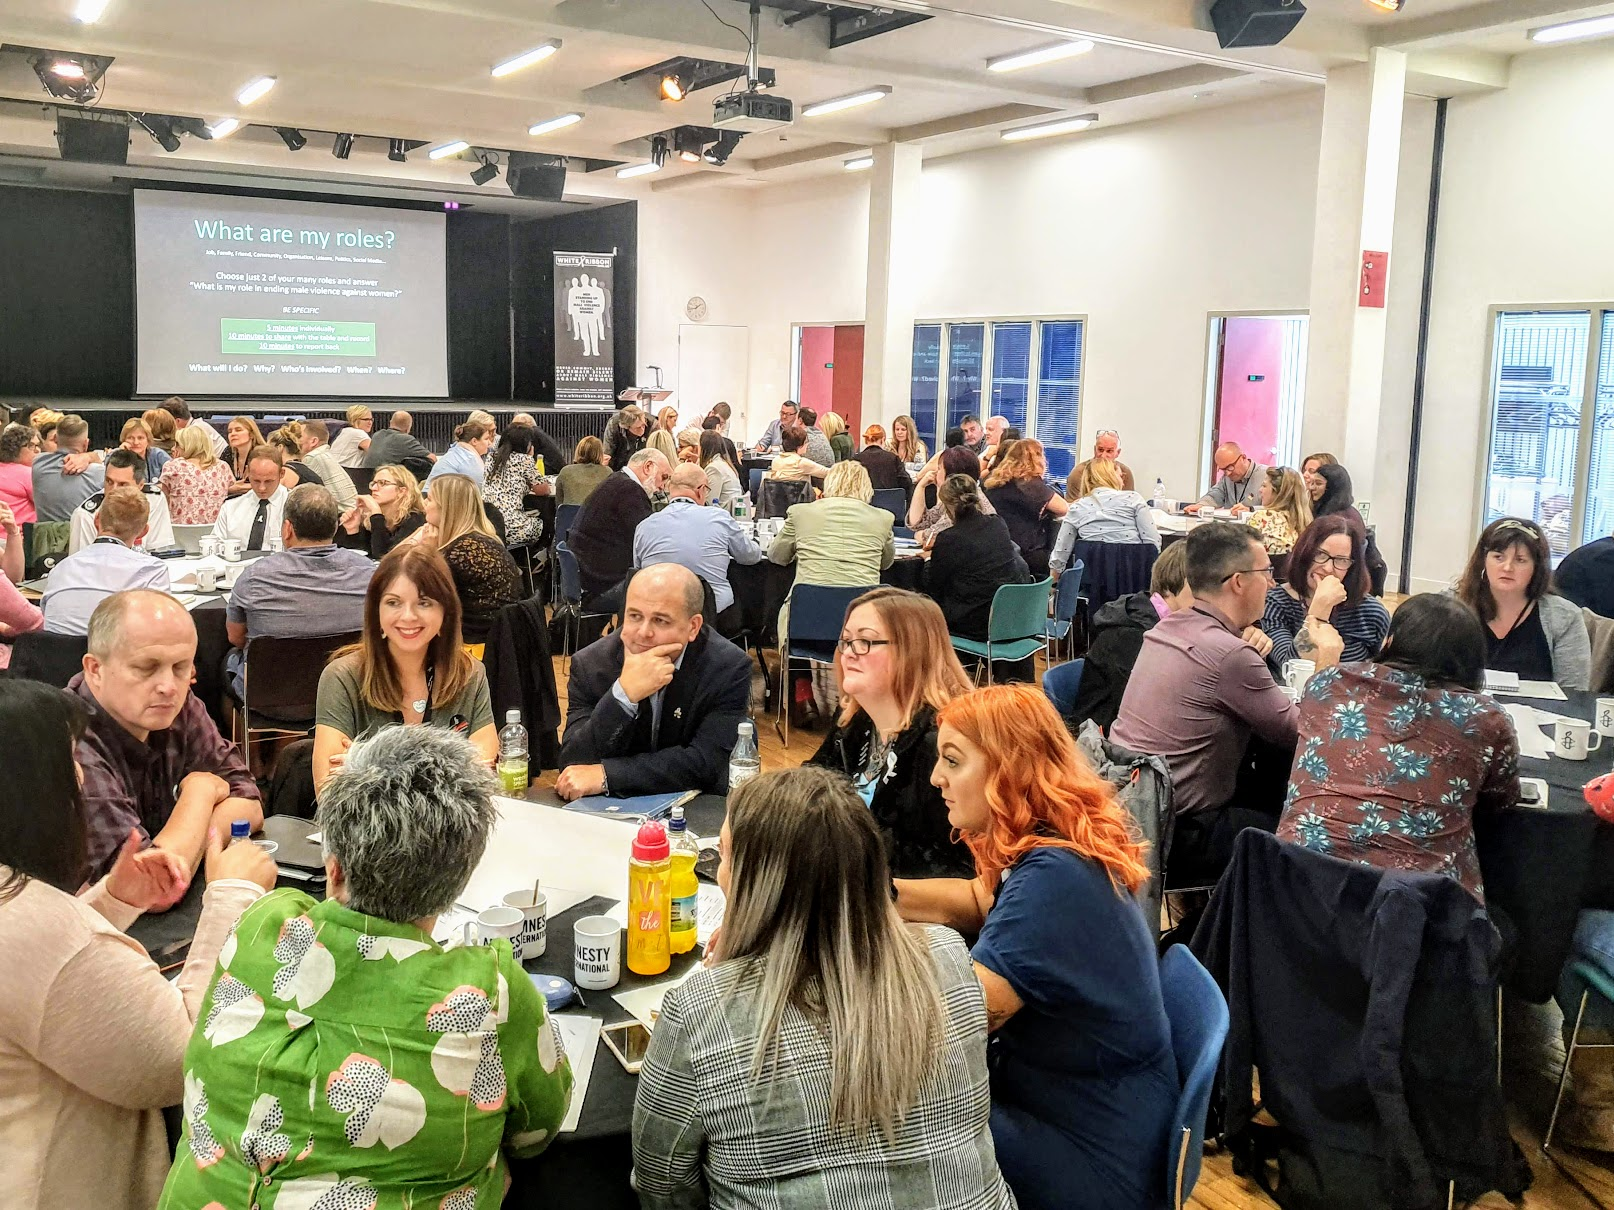 Delegates attending #WR19 Conference at Amnesty International Human Rights Action Centre, London